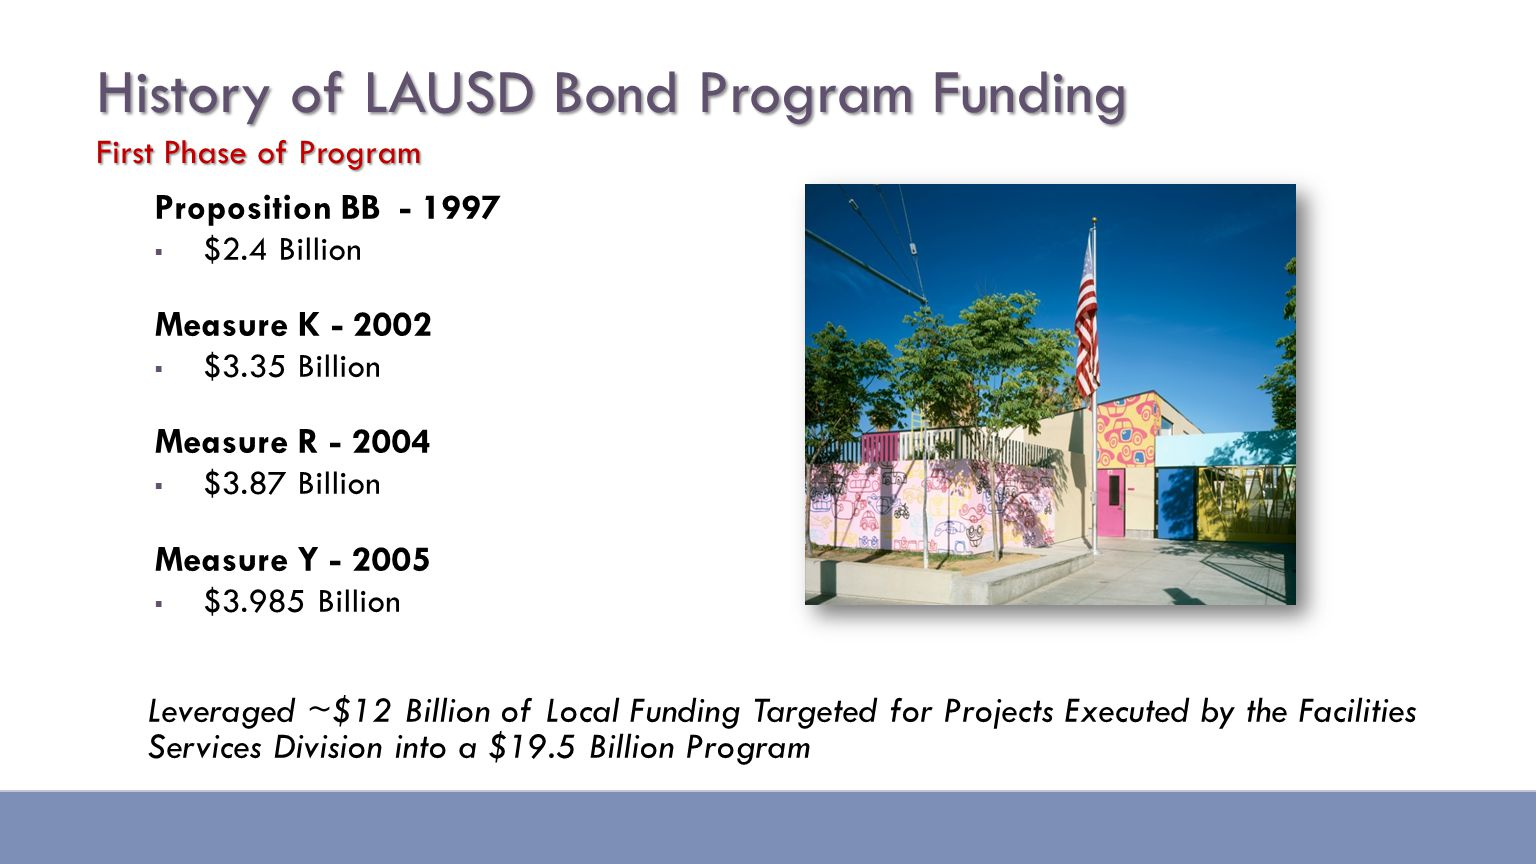 History of LAUSD Bond Program Funding First Phase of Program Proposition BB - 1997  $2.4 Billion Measure K - 2002  $3.35 Billion Measure R - 2004  $3.87 Billion Measure Y - 2005  $3.985 Billion Leveraged ~$12 Billion of Local Funding Targeted for Projects Executed by the Facilities Services Division into a $19.5 Billion Program